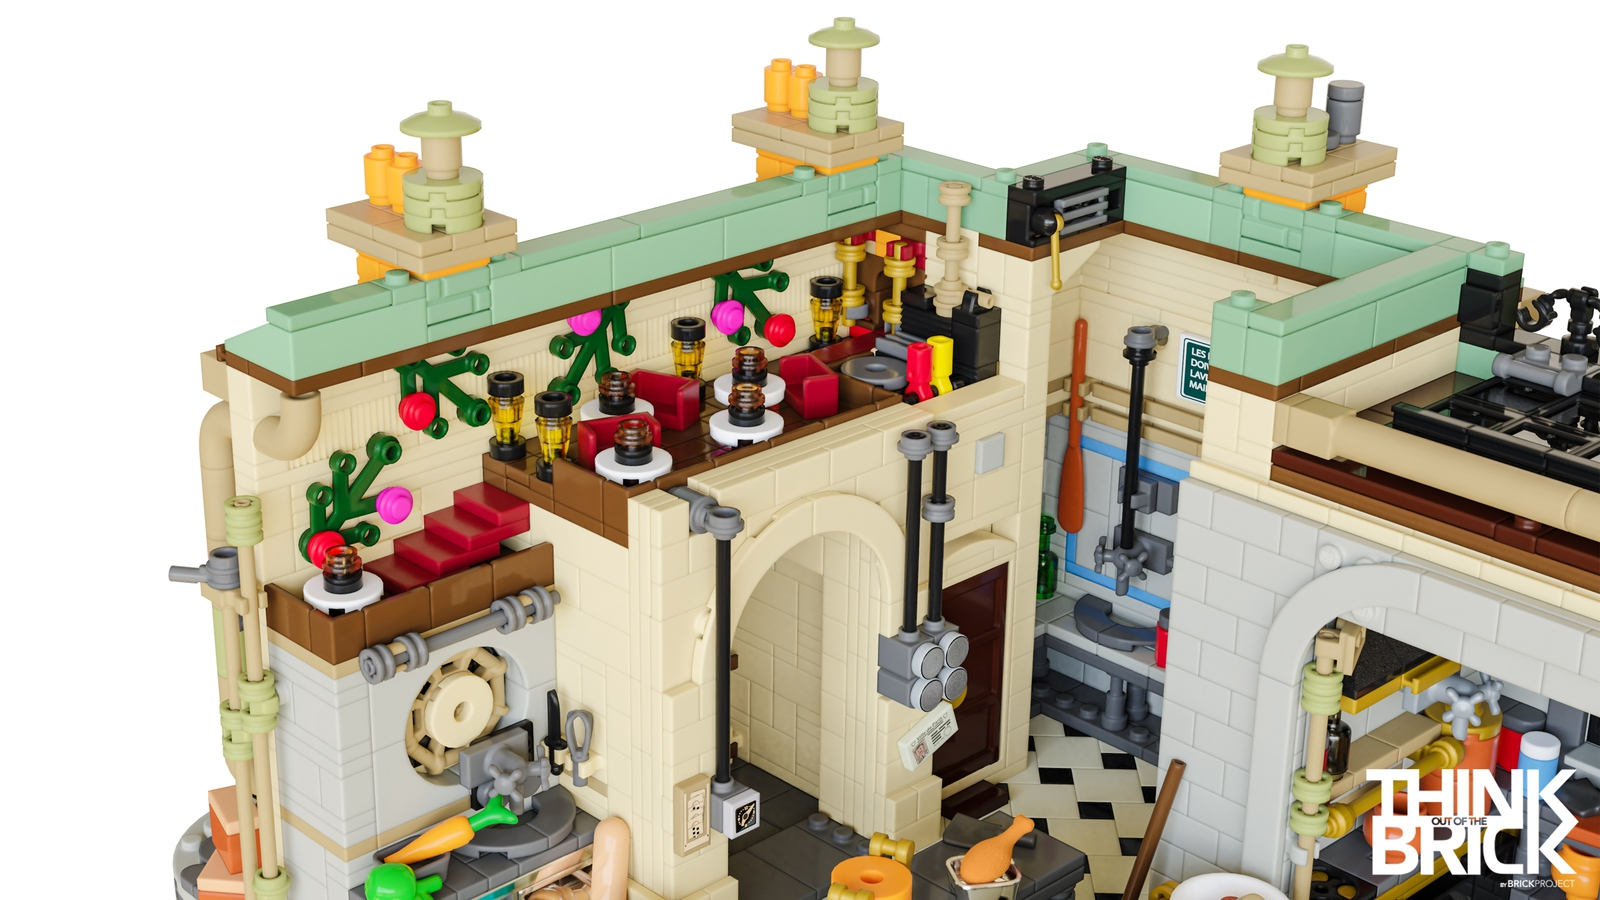 lego-ideas-ratatouille-open-the-doors-inneres-brick-project zusammengebaut.com